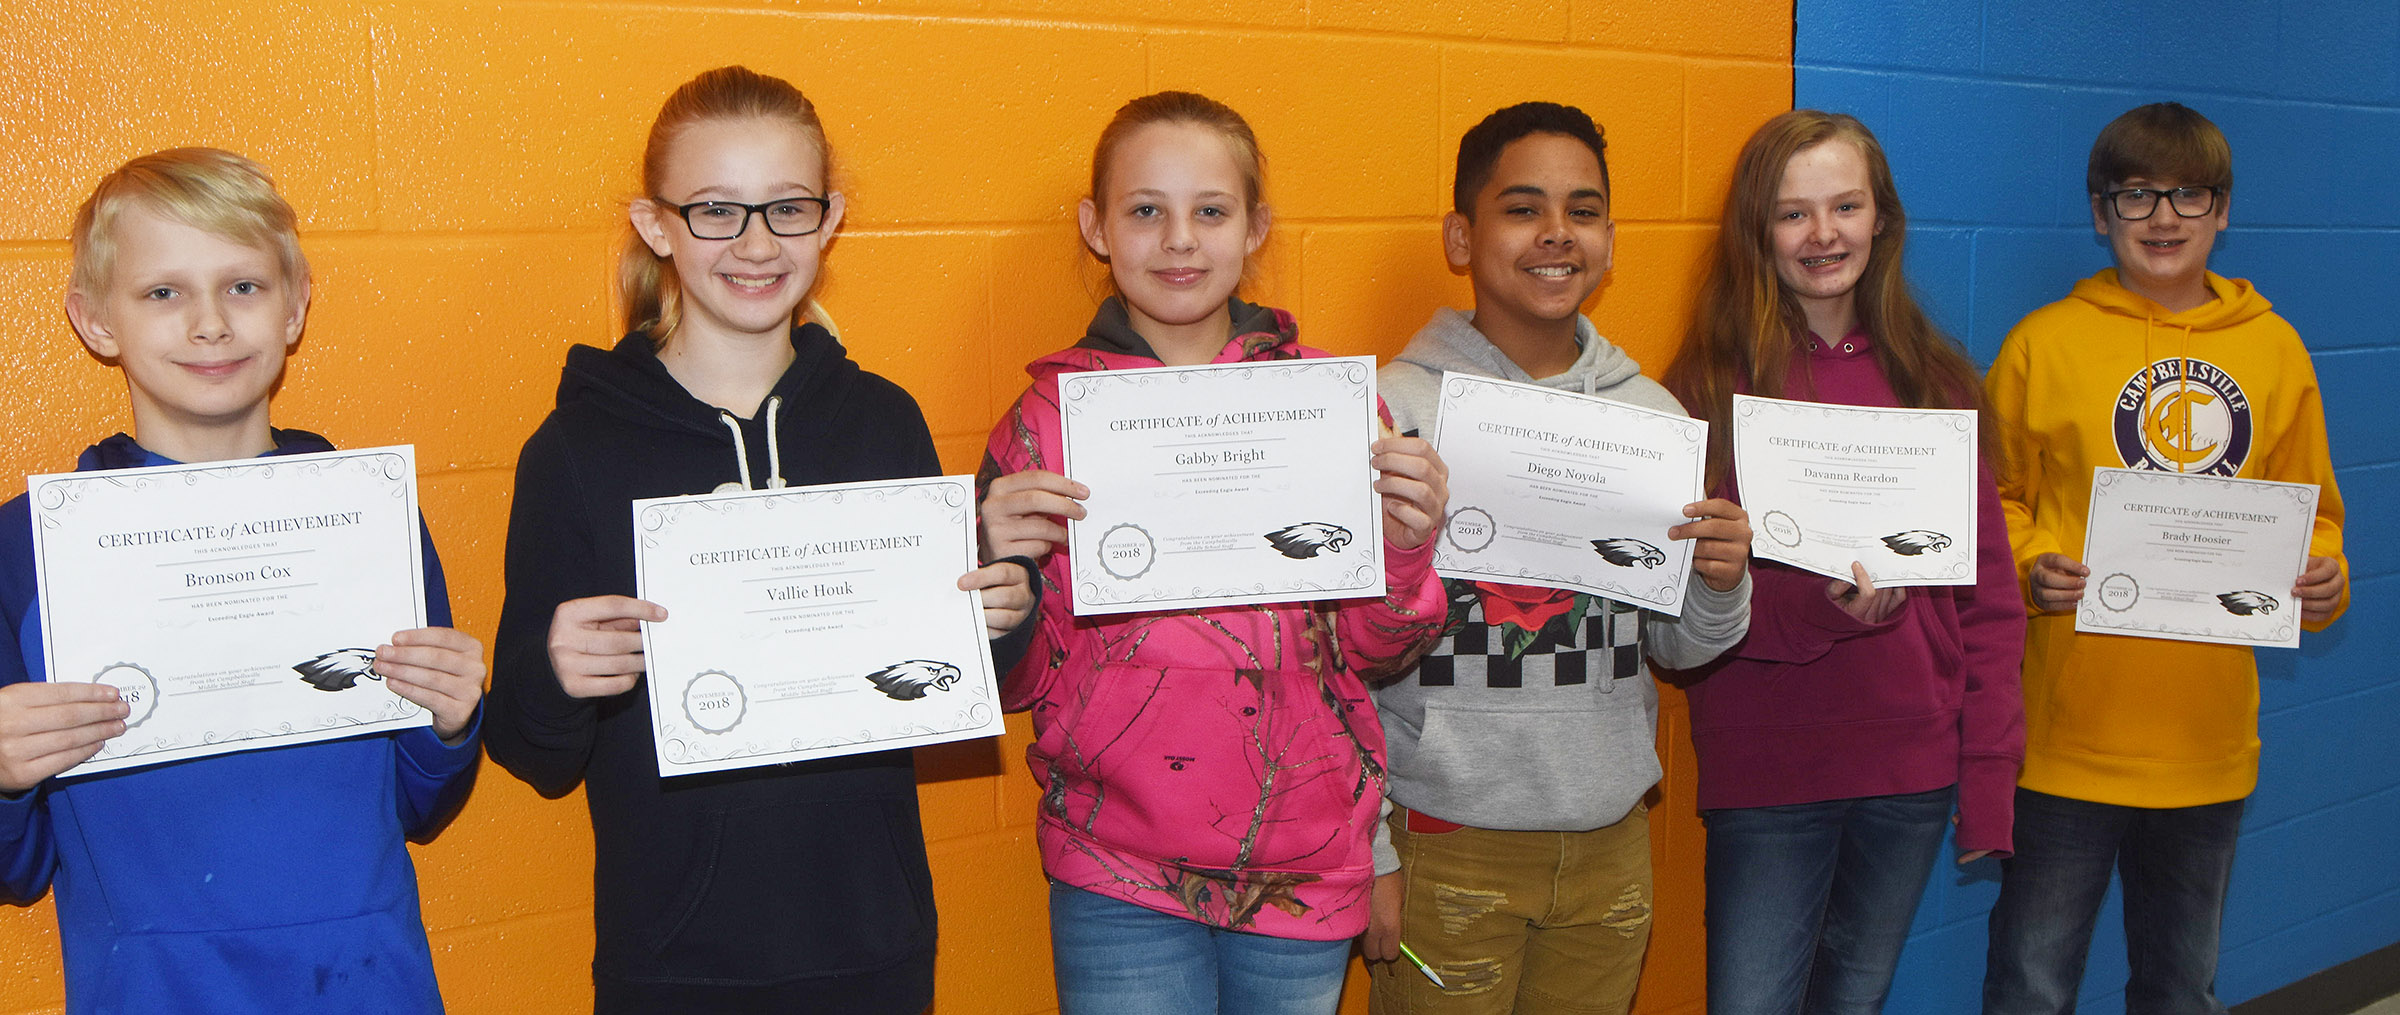 CMS Exceeding Eagles for the week of Nov. 26 are, from left, sixth-graders Bronson Cox and Vallie Houk, seventh-graders Gabby Bright and Diego Noyola and eighth-graders Davanna Reardon and Brady Hoosier.